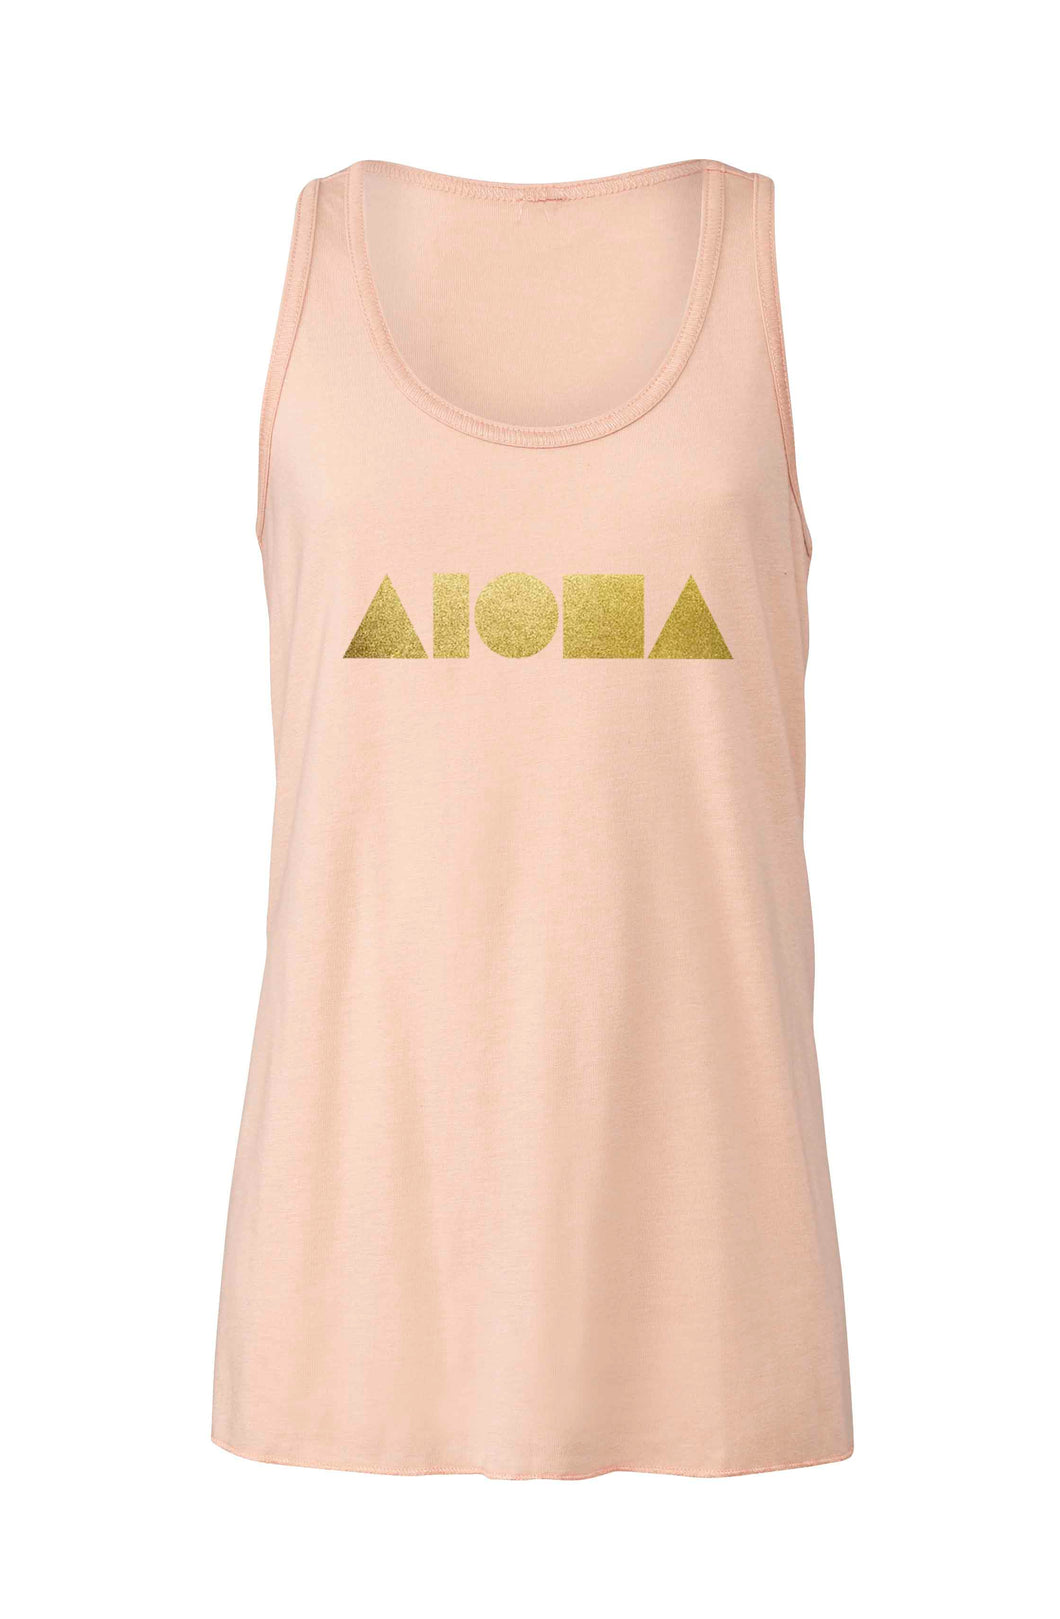 Aloha Shapes Youth Flowy Racerback Tank